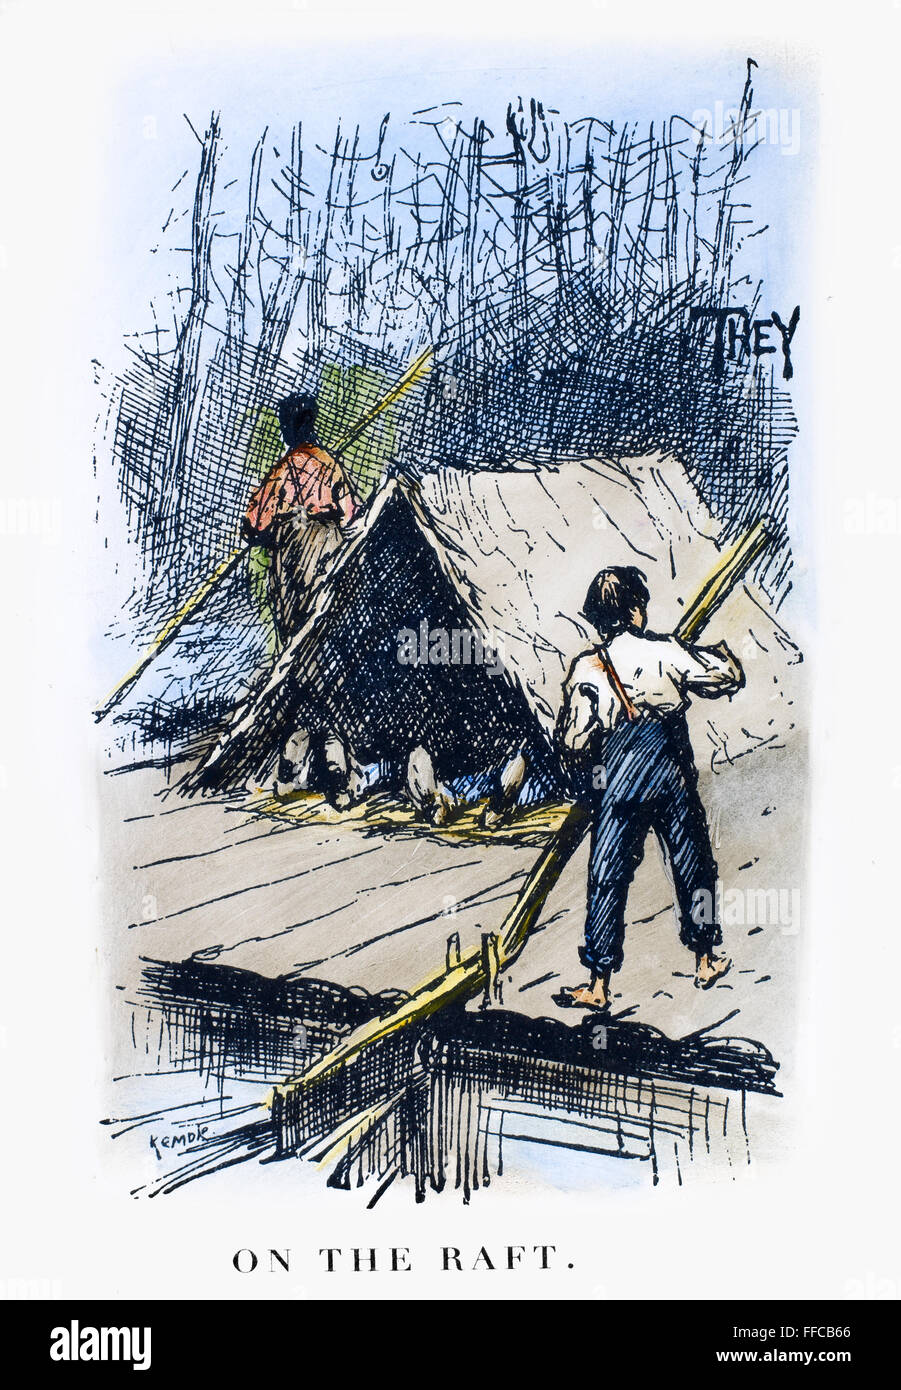 huck finn life on the raft vs land Free essay on huckleberry finn: land vs of the river and is used by twain to portray what life was really like raft journey in huckleberry finn by mark.